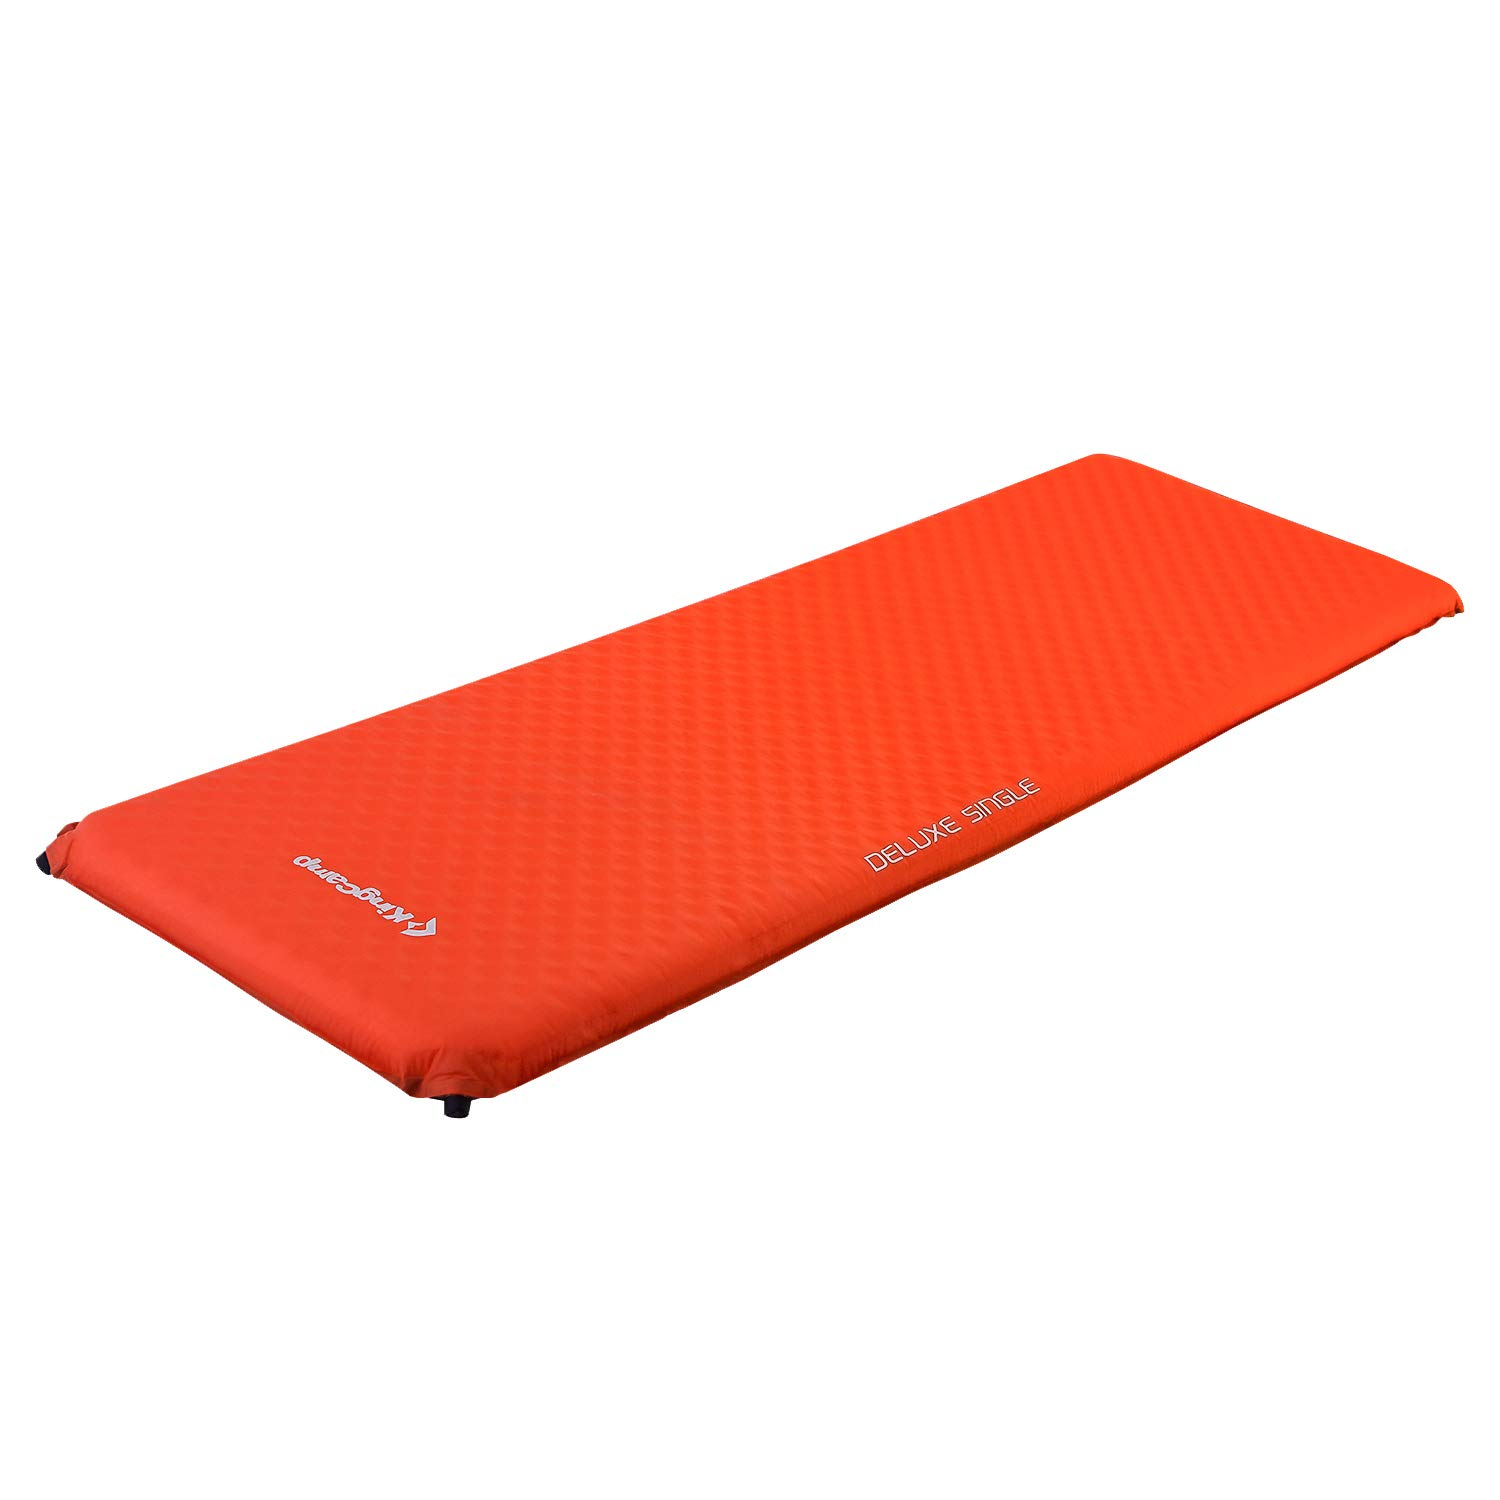 KingCamp Camping Sleeping Foam Mattress - Deluxe Single Self Inflating 3 inches Thick Pad with Carry Bag, Suitable for Family Outdoor Activities(Orange-Deluxe Single) by KingCamp